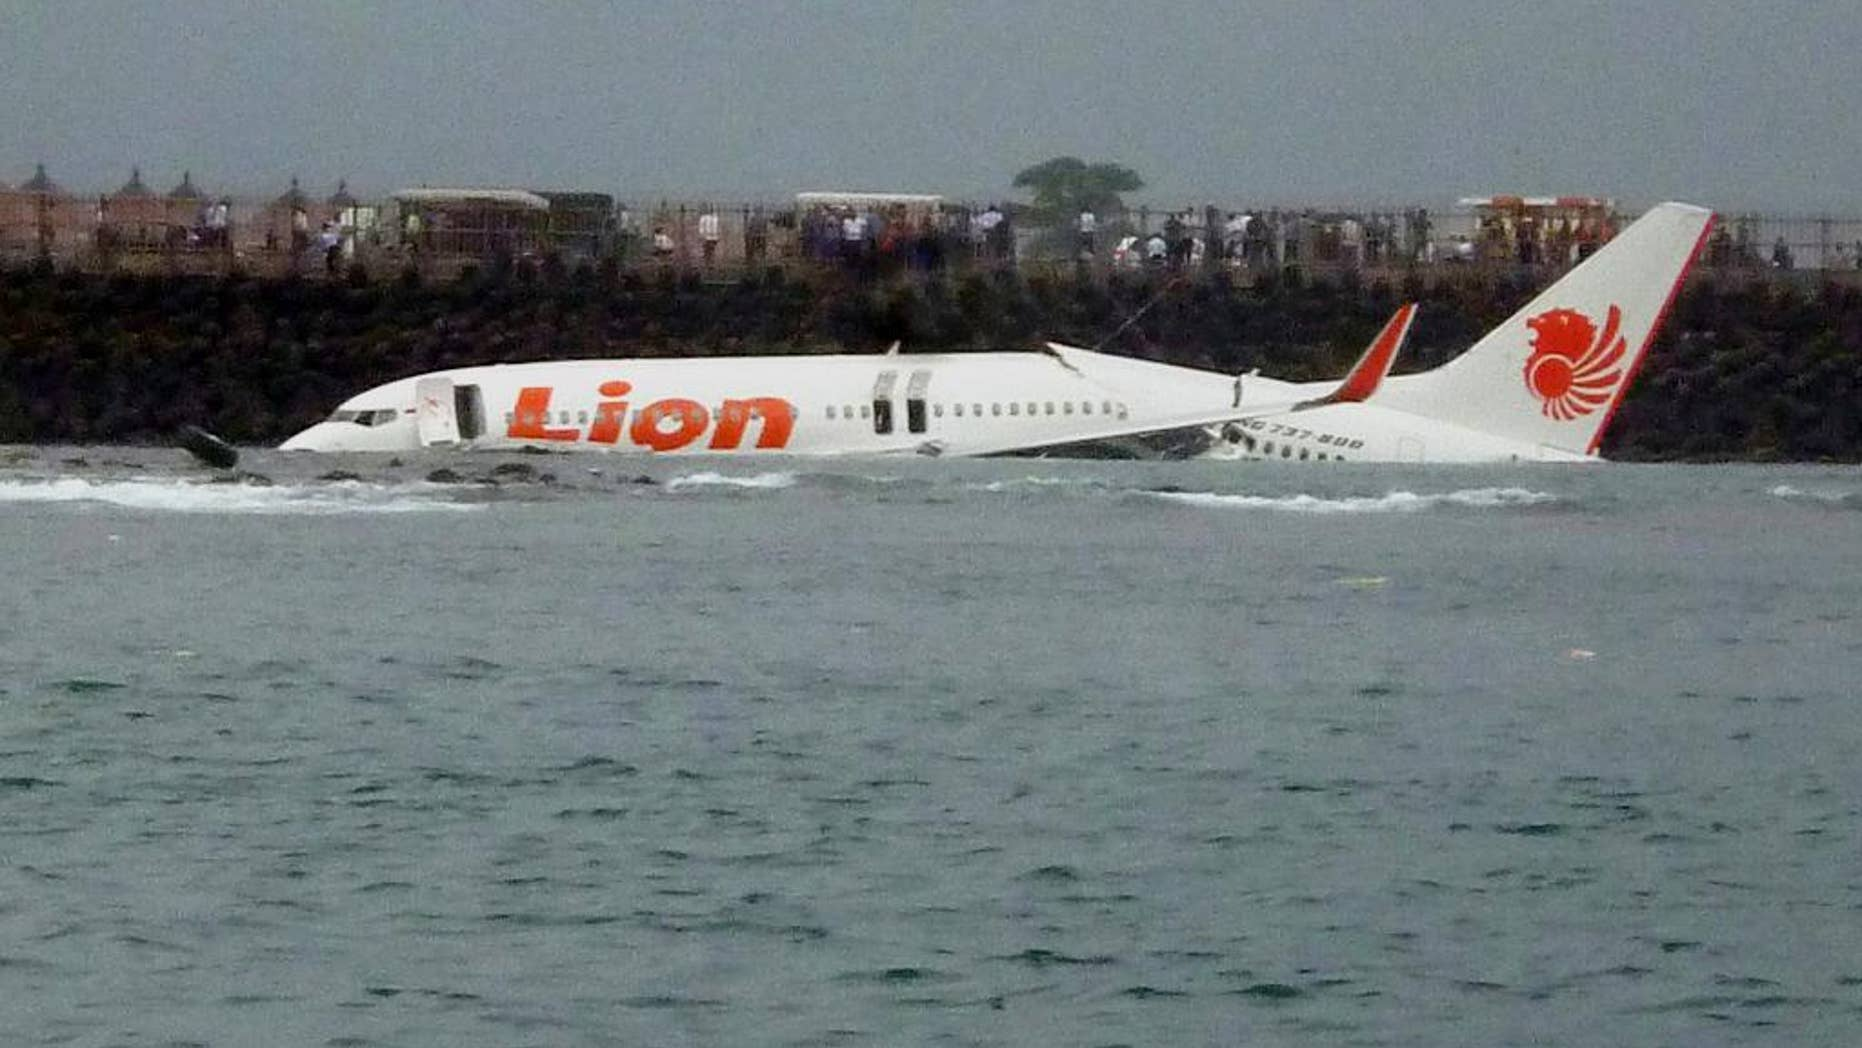 FILE - In this Saturday, April 13, 2013, file photo, the wreckage of a Lion Air plane sits on the water near the airport in Bali, Indonesia. The head of Indonesia's narcotics agency says most of the country's airline accidents have involved pilots on drugs, including a Lion Air jet that slammed into the sea four years ago while trying to land on Bali. Budi Waseso made the comments Thursday at a ceremony inaugurating Bali's traditional village security guards as anti-drug volunteers. (AP Photo)